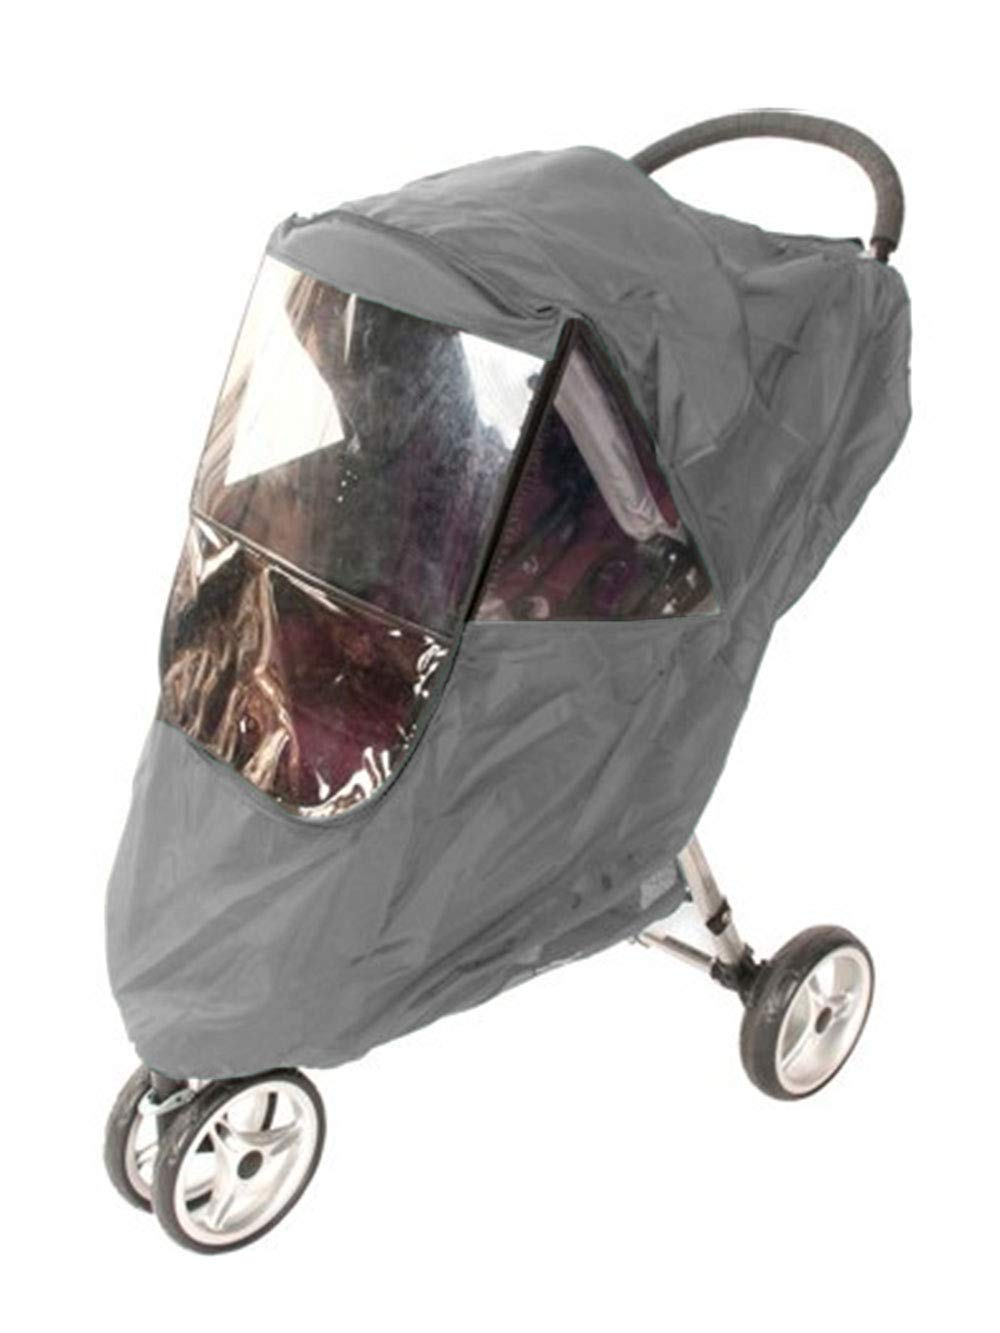 Comfy Baby Universal Multi-Purpose Stroller Weather Shield - gray, one size